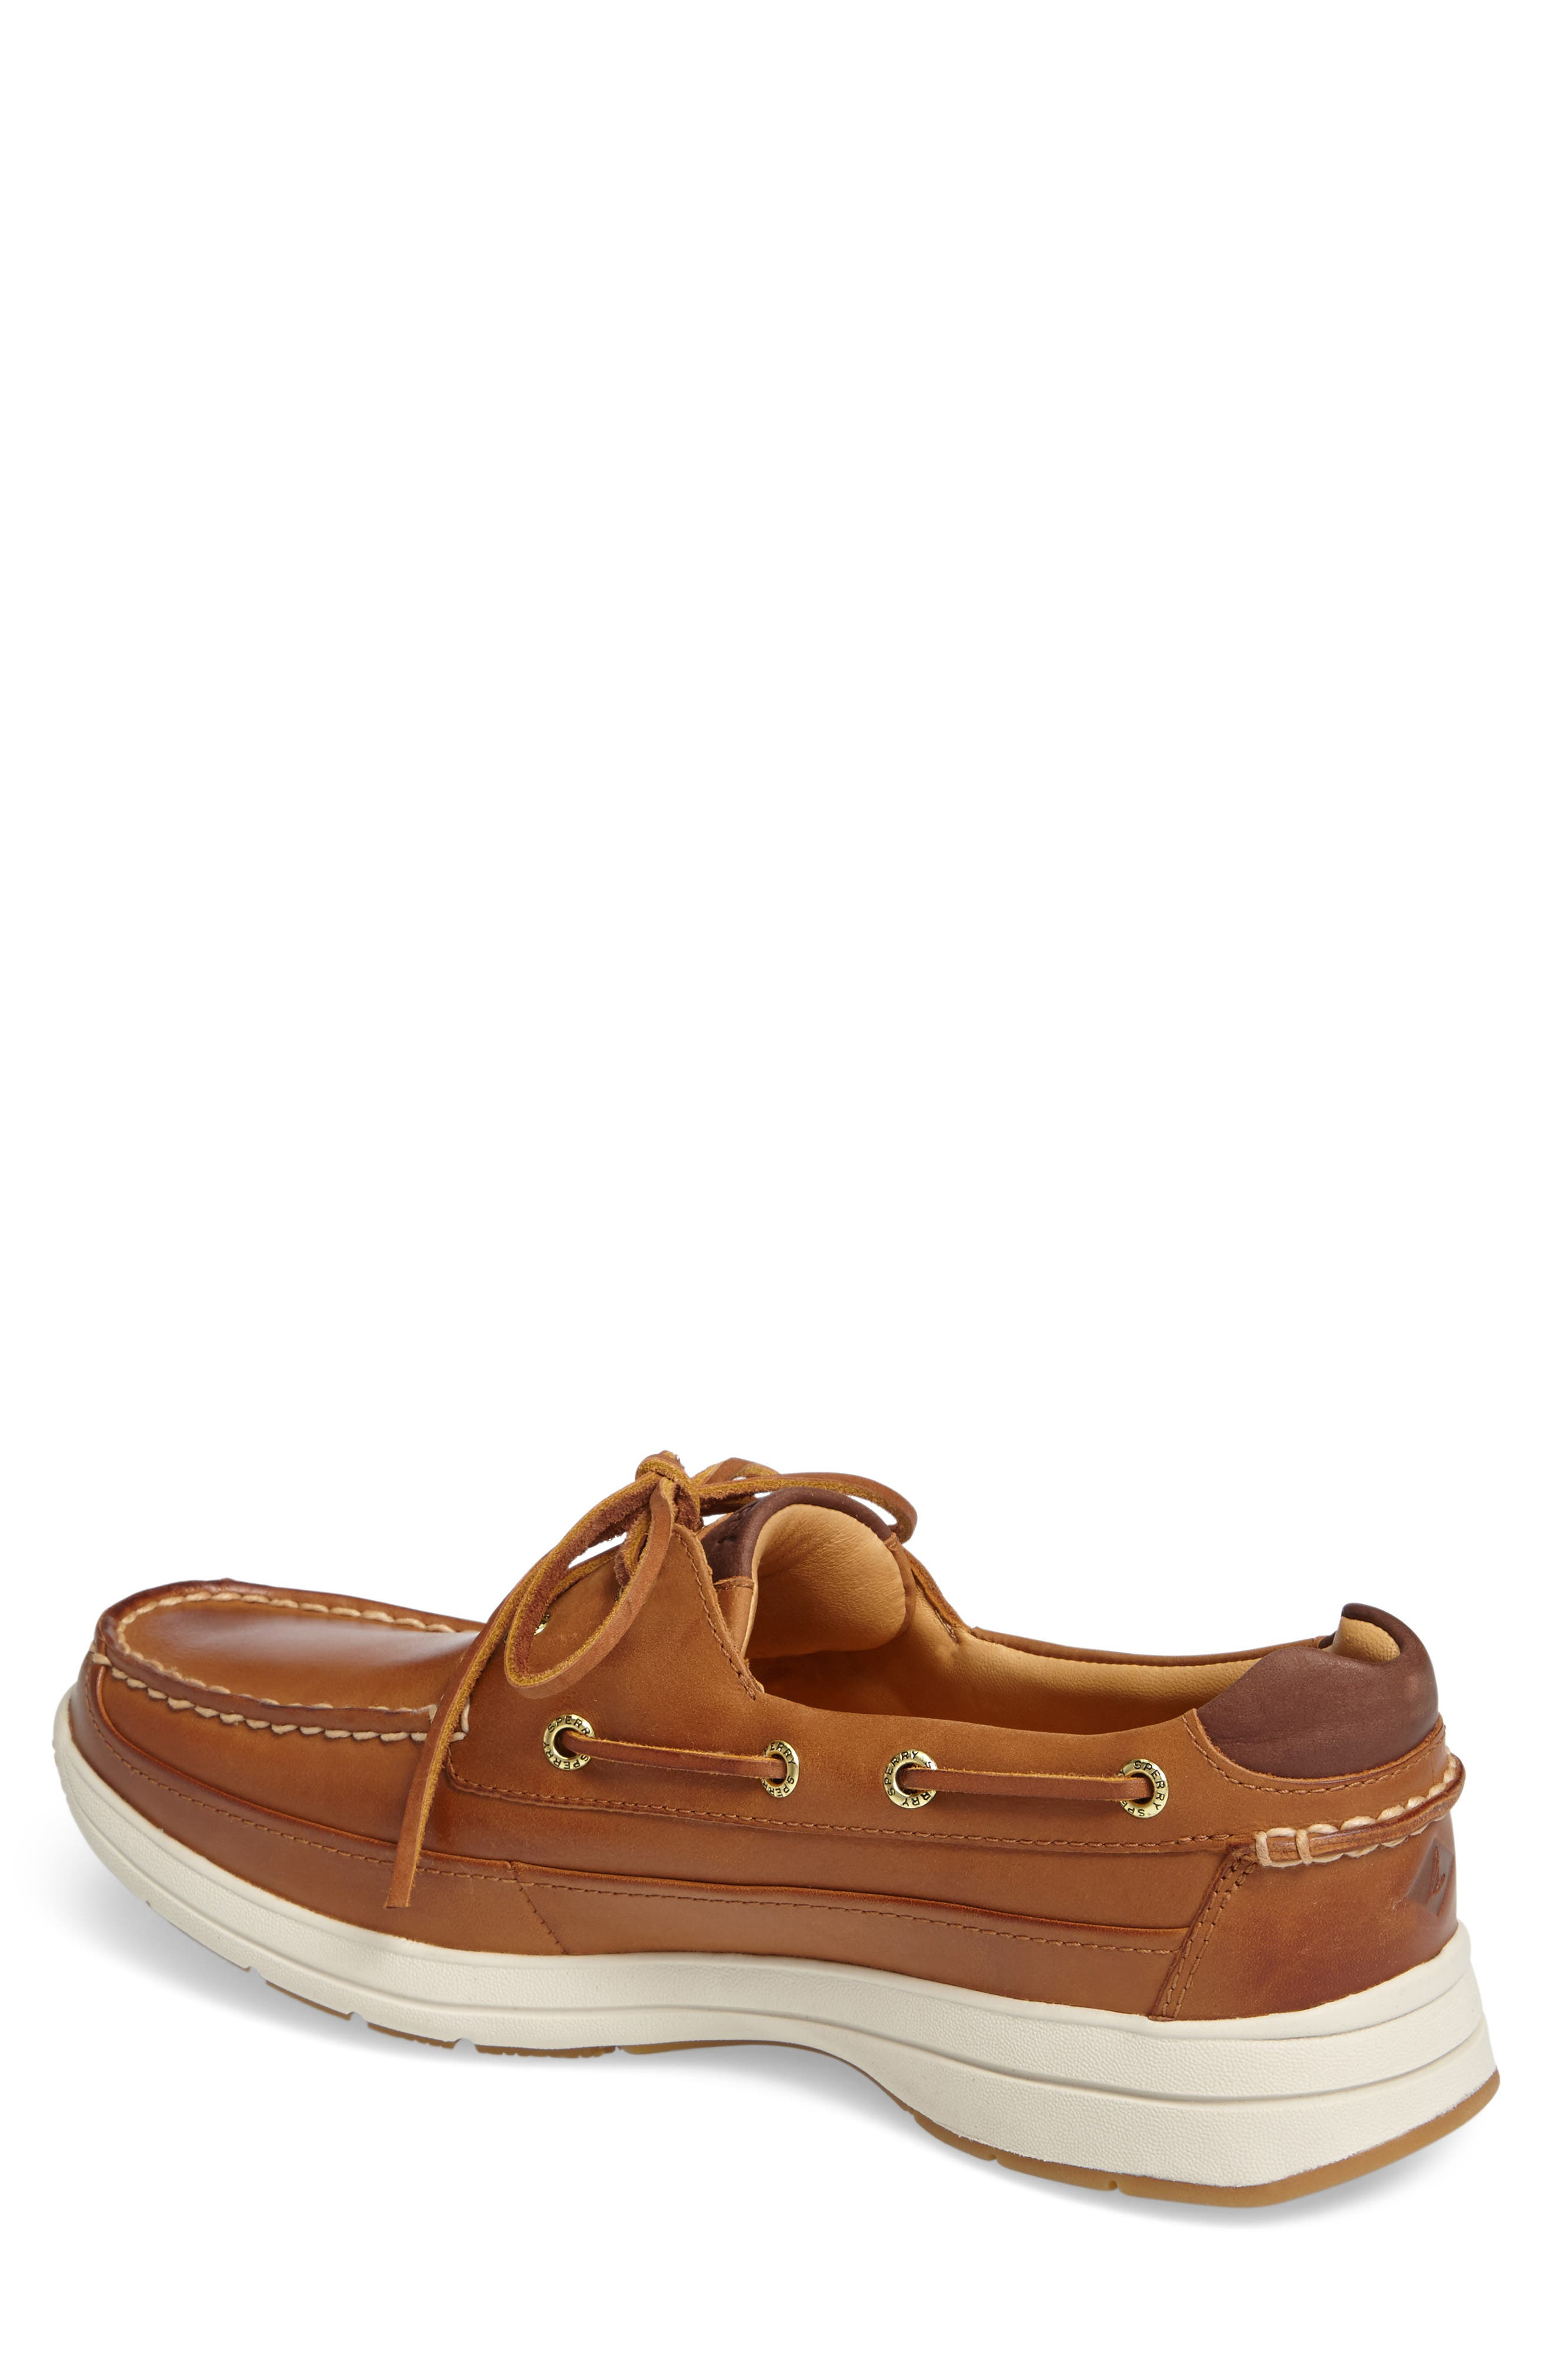 SPERRY, Gold Cup Ultralite Boat Shoe, Alternate thumbnail 2, color, TAN